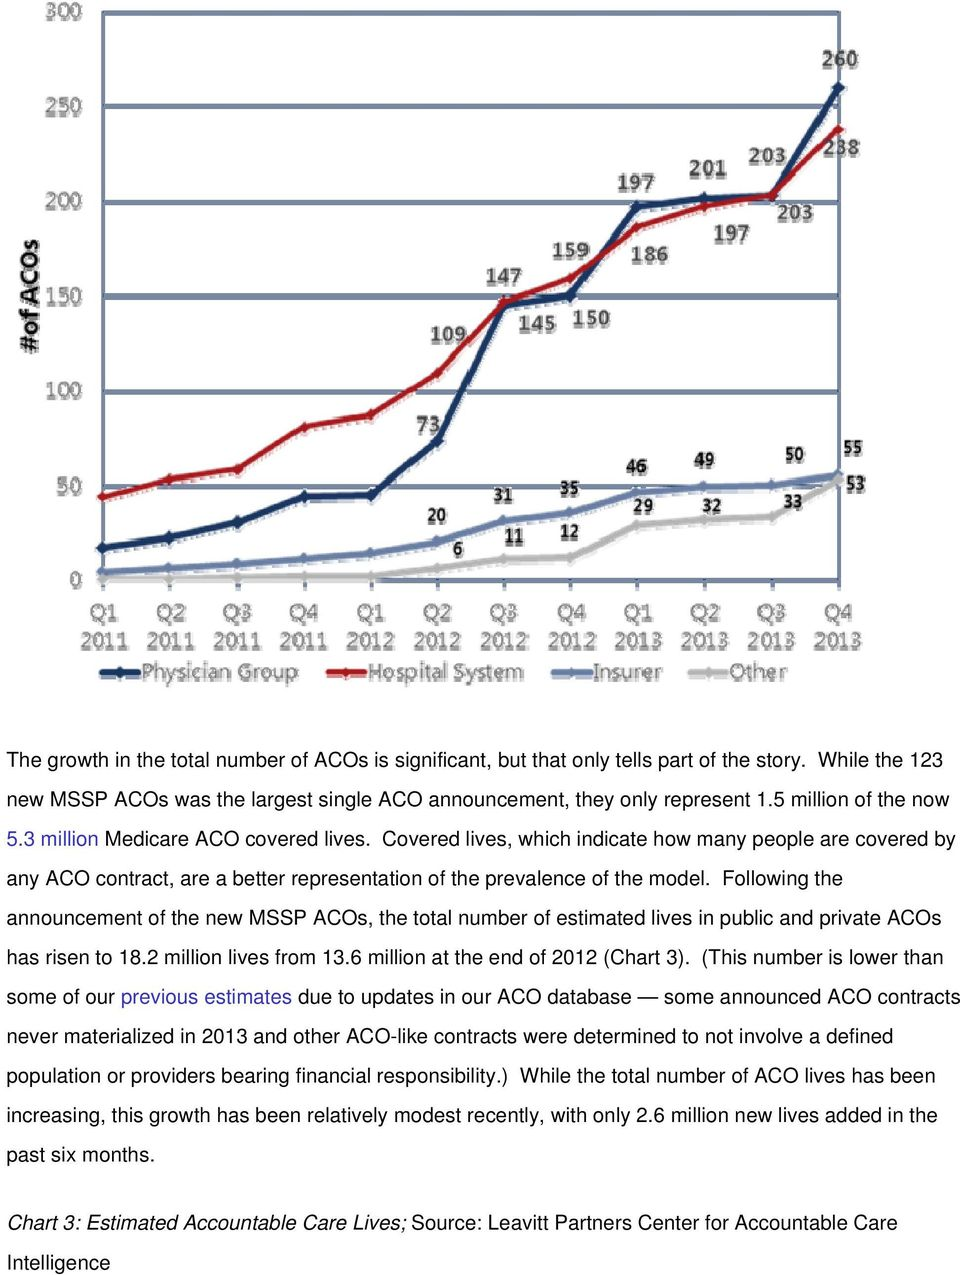 Following the announcement of the new MSSP ACOs, the total number of estimated lives in public and private ACOs has risen to 18.2 million lives from 13.6 million at the end of 2012 (Chart 3).